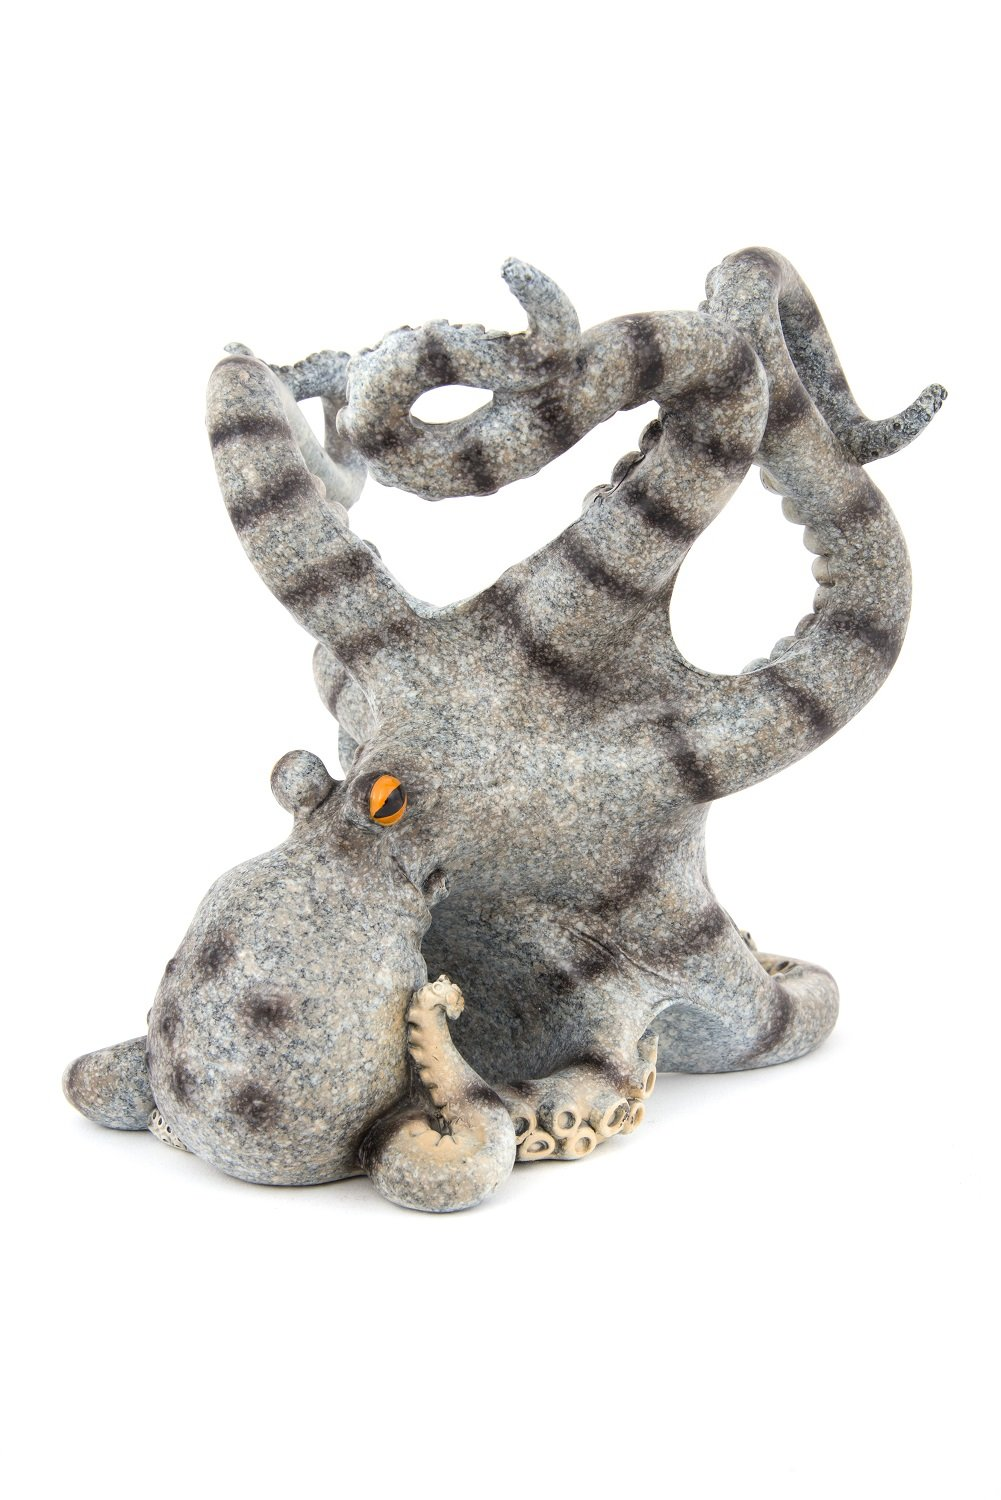 Nauti Gray with Stripes Octopus Wine Bottle Holder Poly Resin High Gloss Finish 7.5 in by Nauti